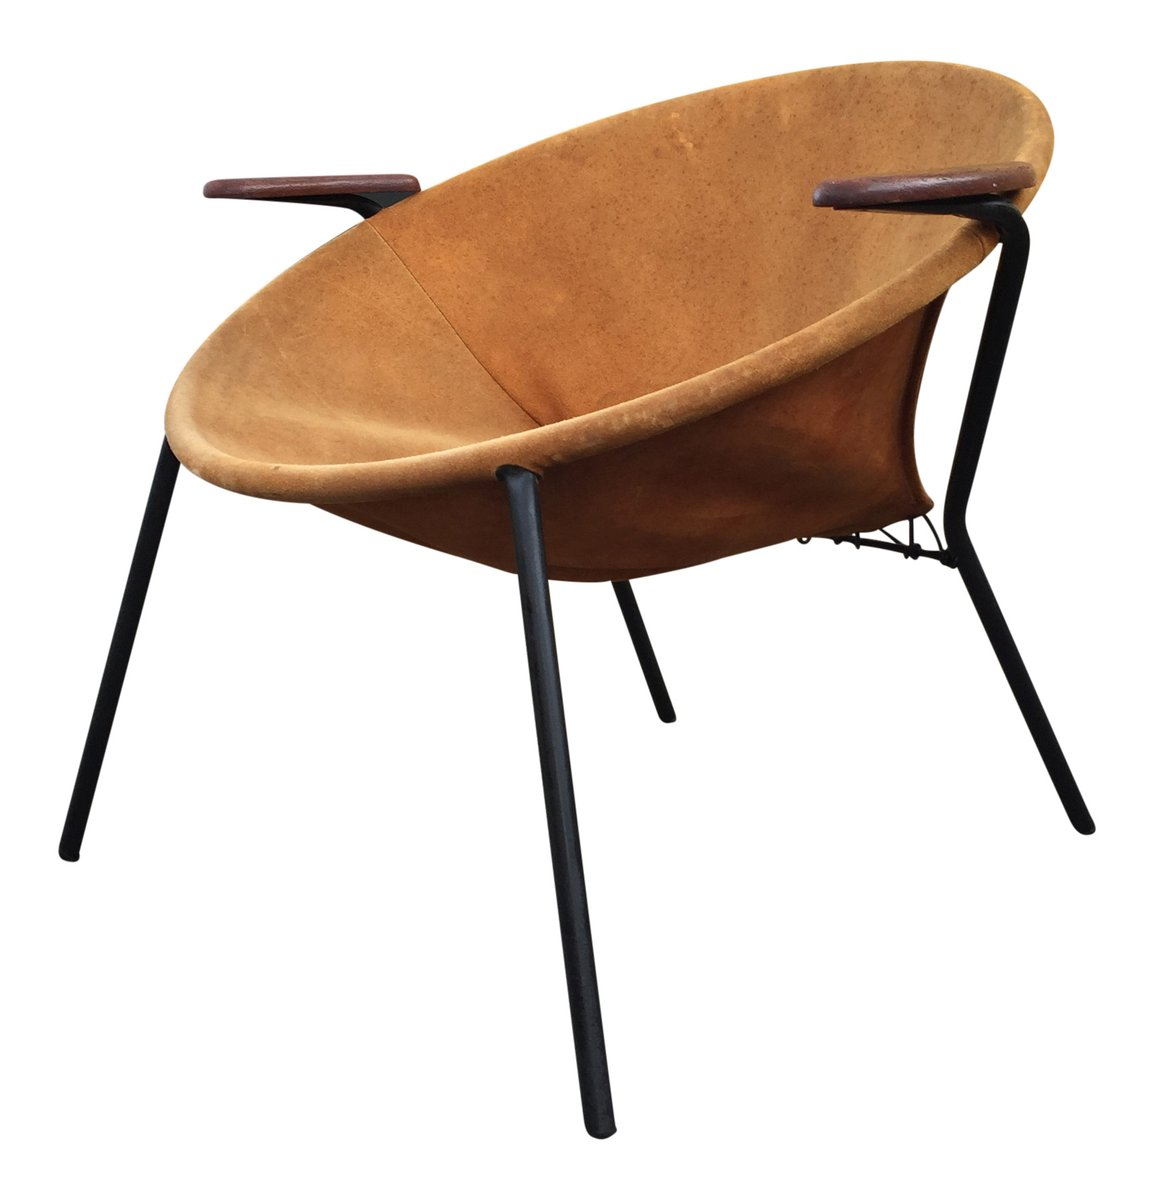 Danish Balloon Teak And Light Brown Suede Chair By Hans Olsen For Lea  Design, 1960s